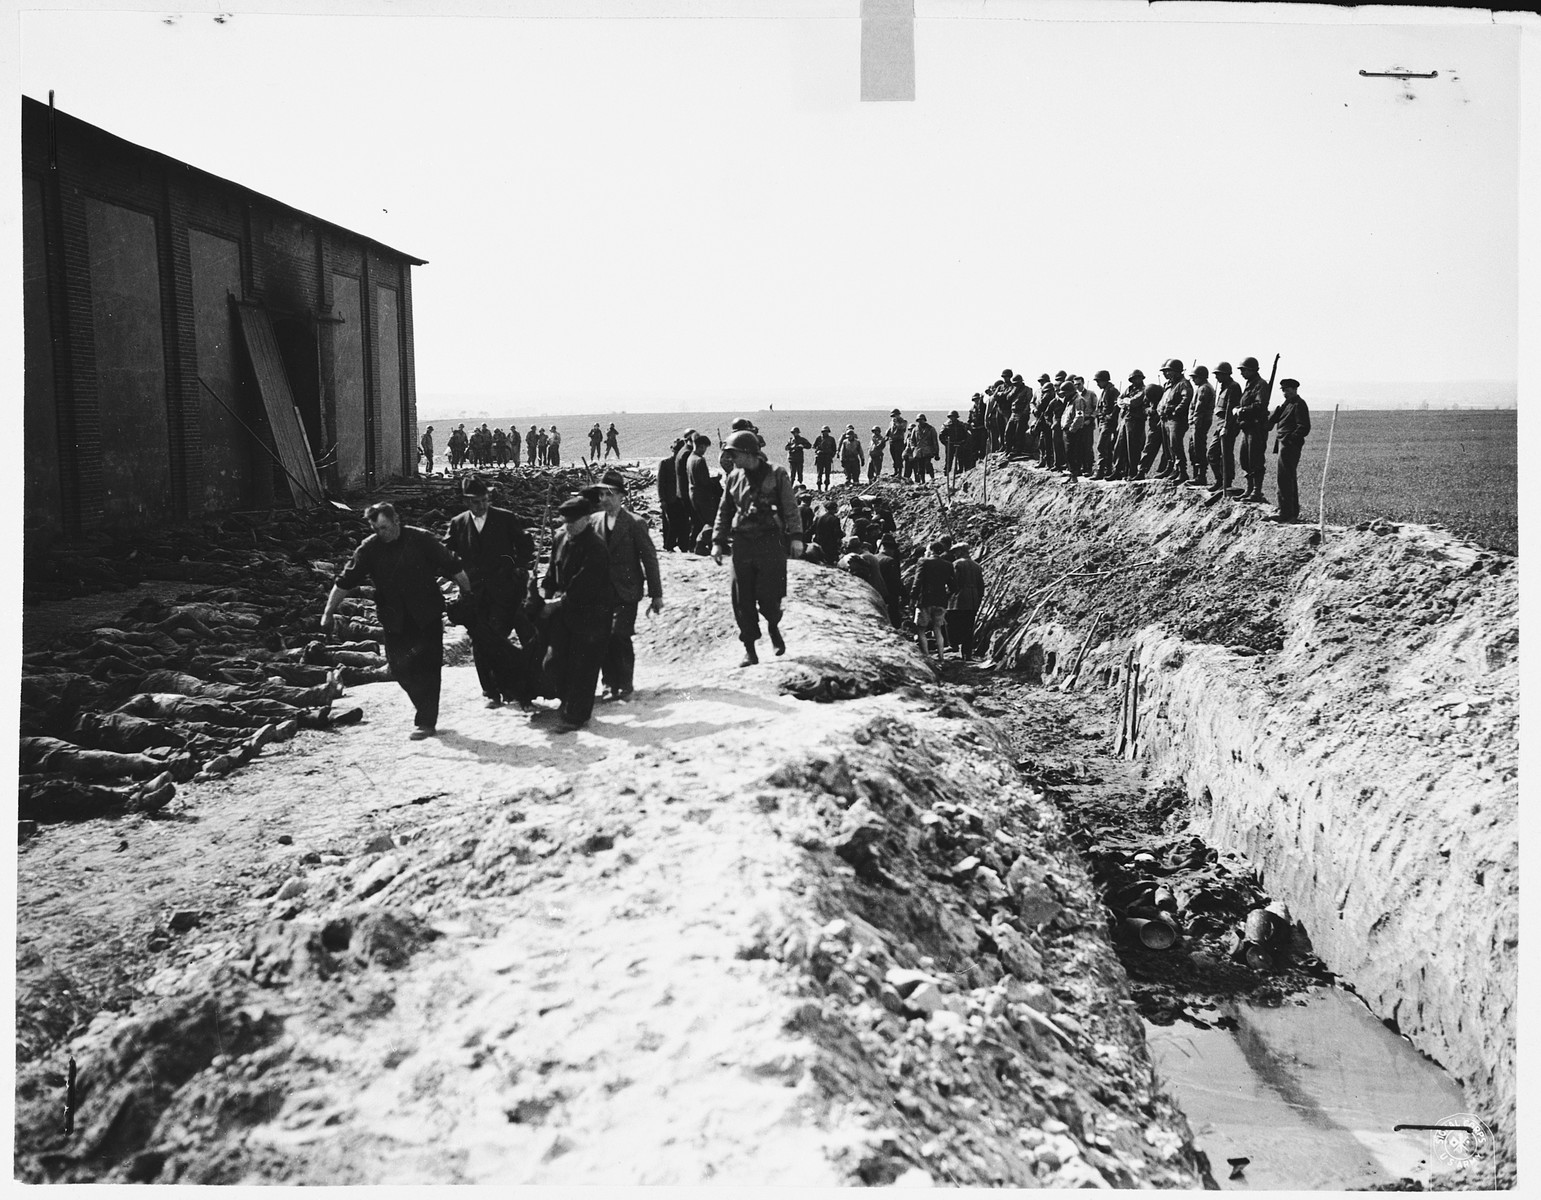 Under the supervision of American soldiers, German civilians remove corpses from a mass grave on the north side of the barn outside of Gardelegen.